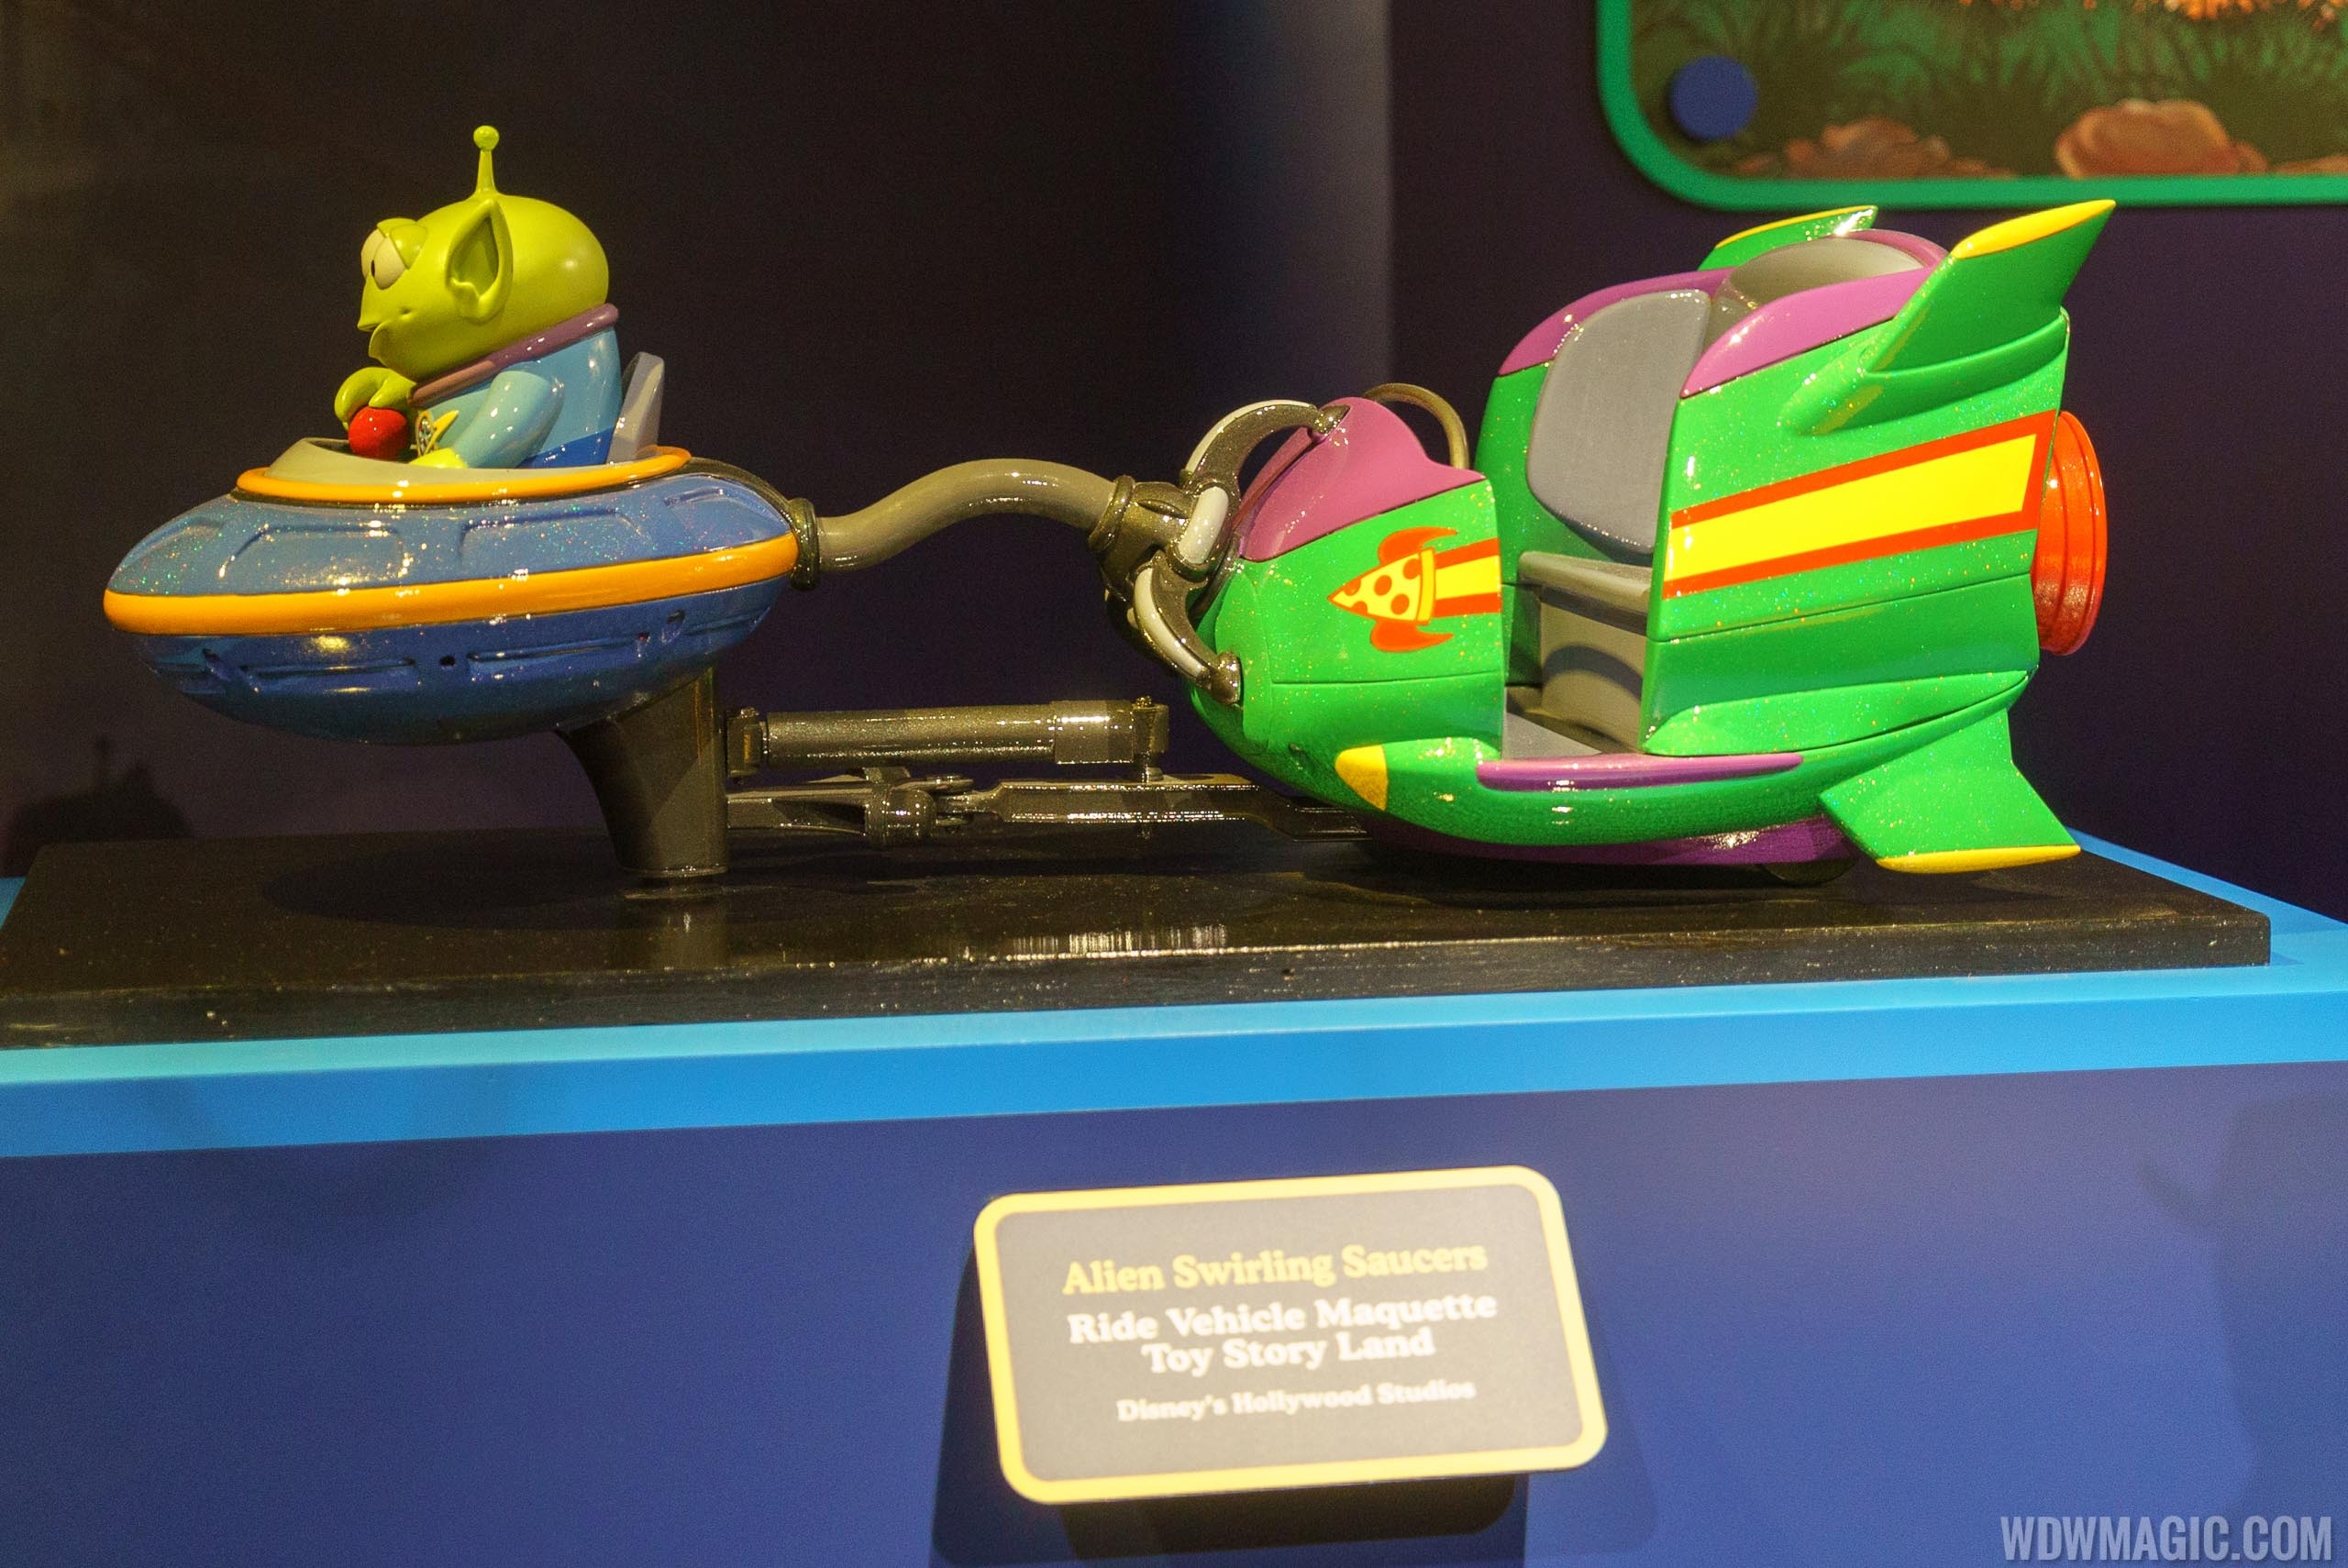 Alien Swirling Saucers ride vehicle